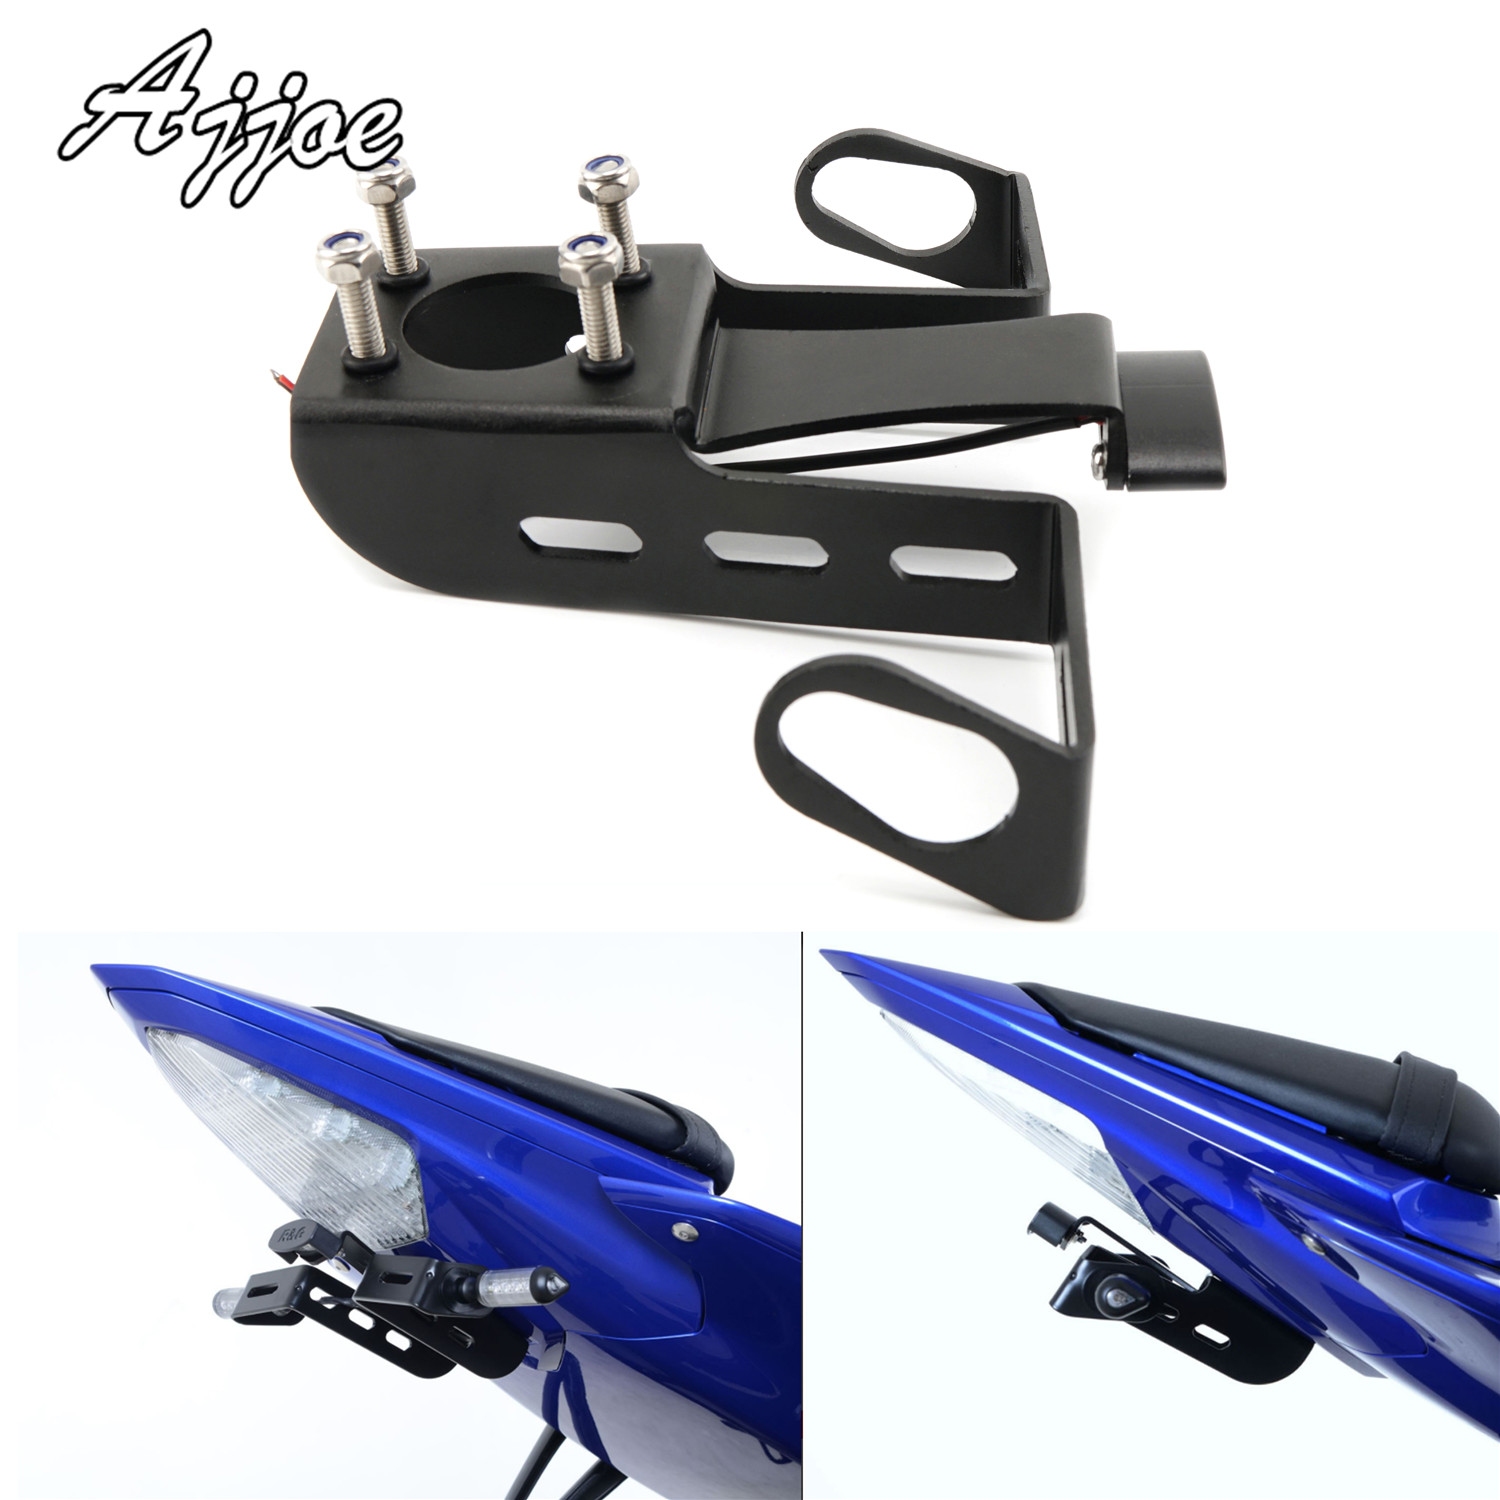 Liquor Motorcycle New For 2000-2005 Yamaha YZF-R1 2001 2002 2003 2004 Exhaust Pipe Hanger Bracket Holder